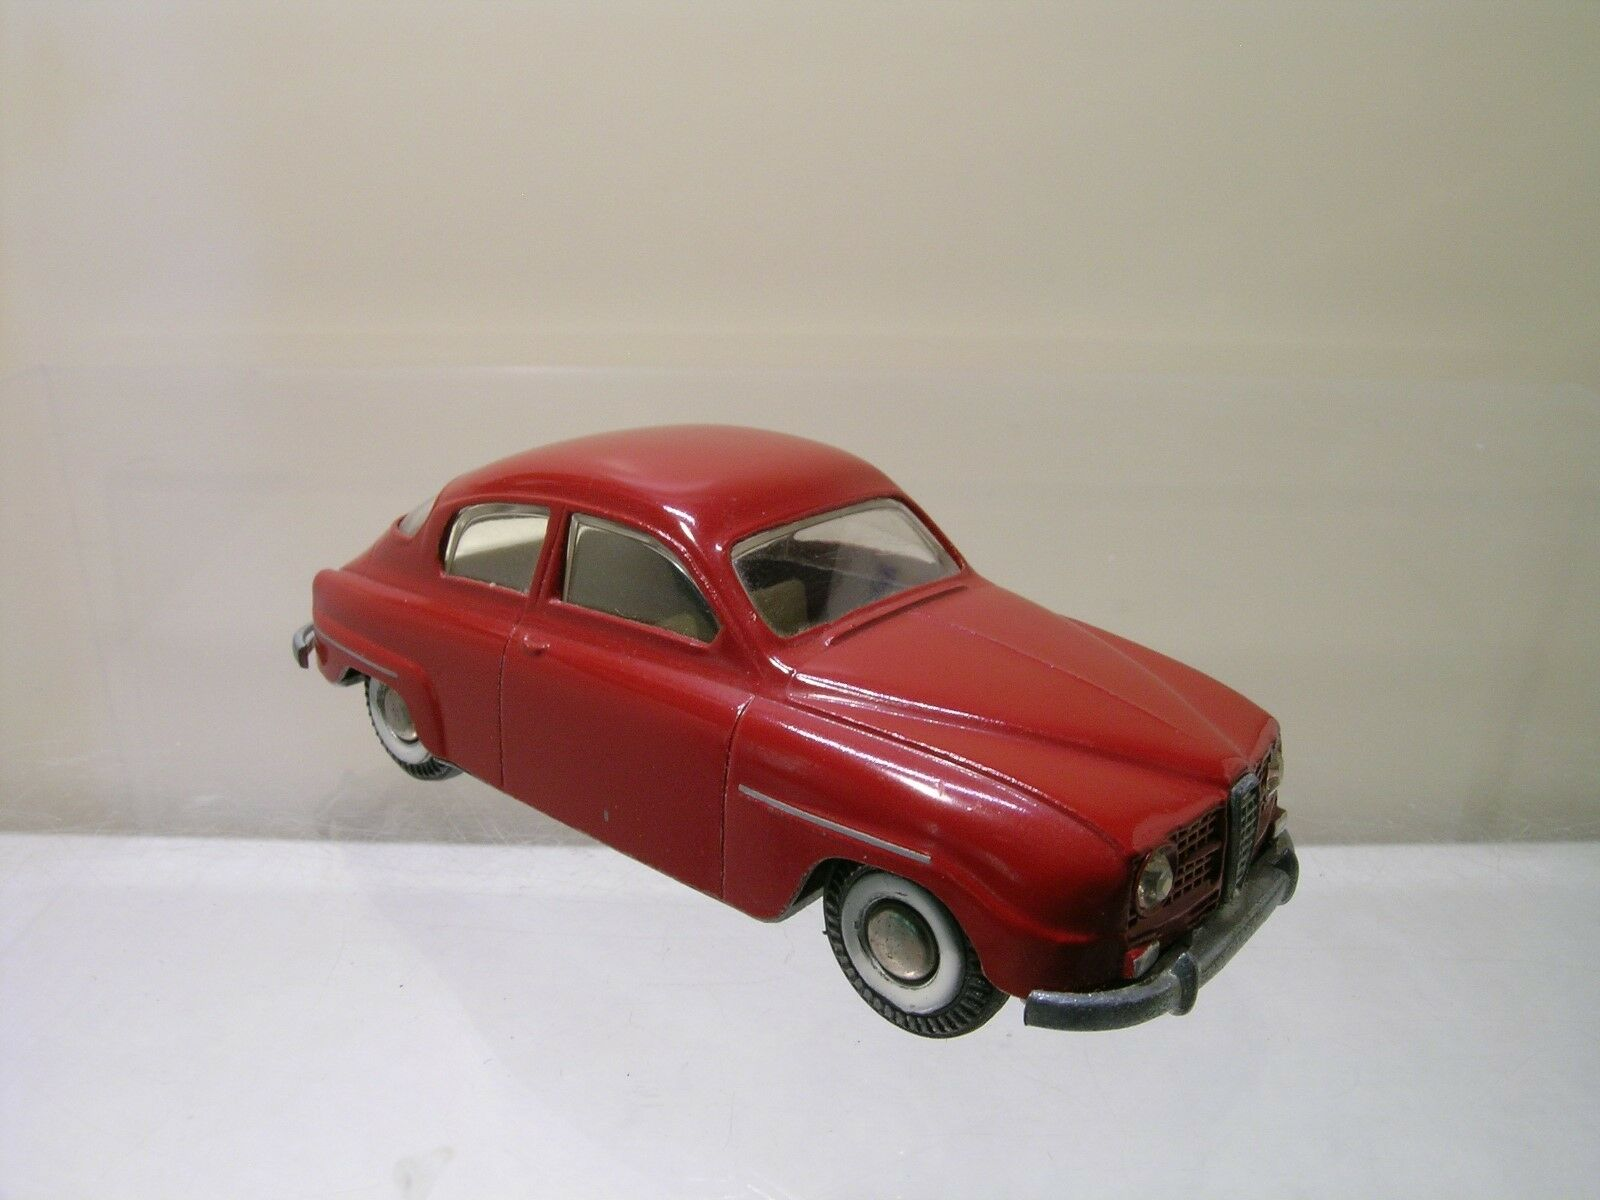 TEKNO DENMARK No. 827/150-1 SAAB 96 1961 rosso COLOUR VERY NEAR-MINT SCALE 1:43